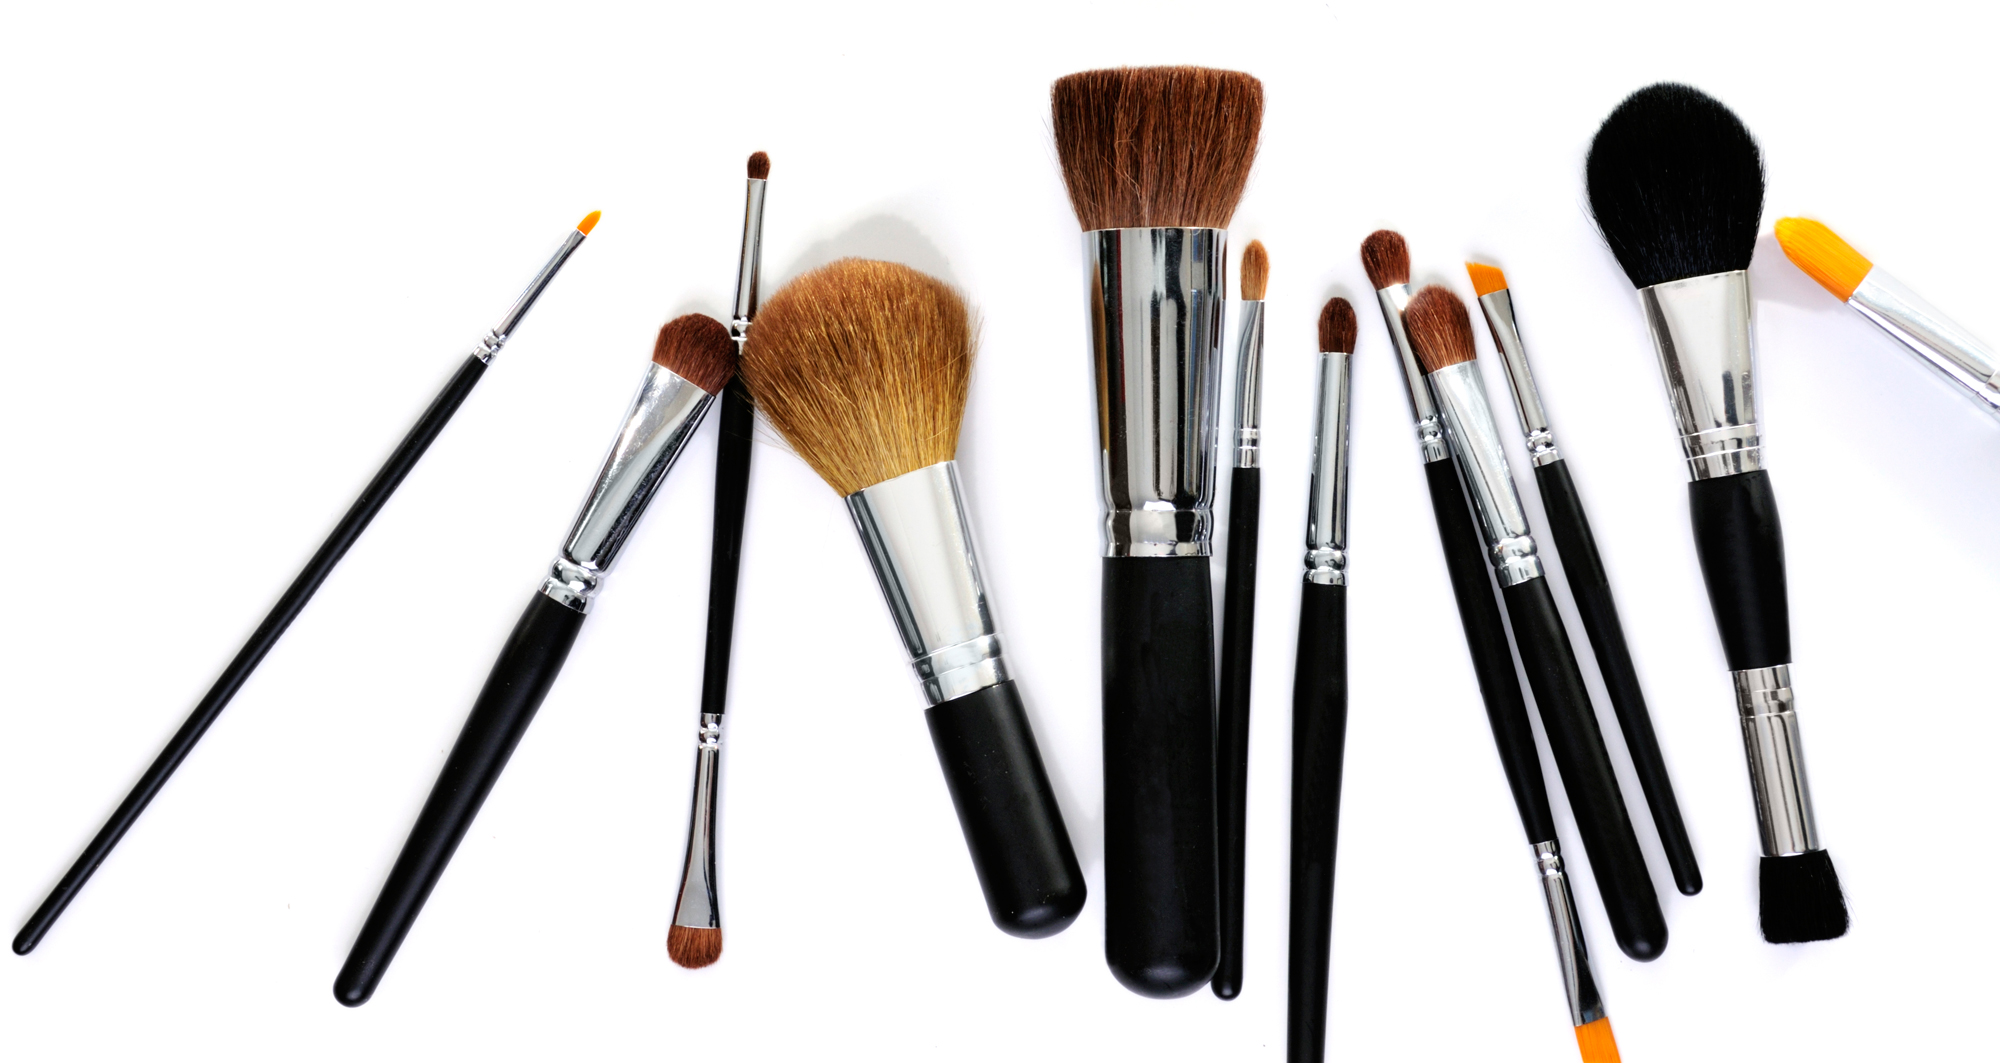 How to Clean Your Makeup Brushes in 3 Easy Steps